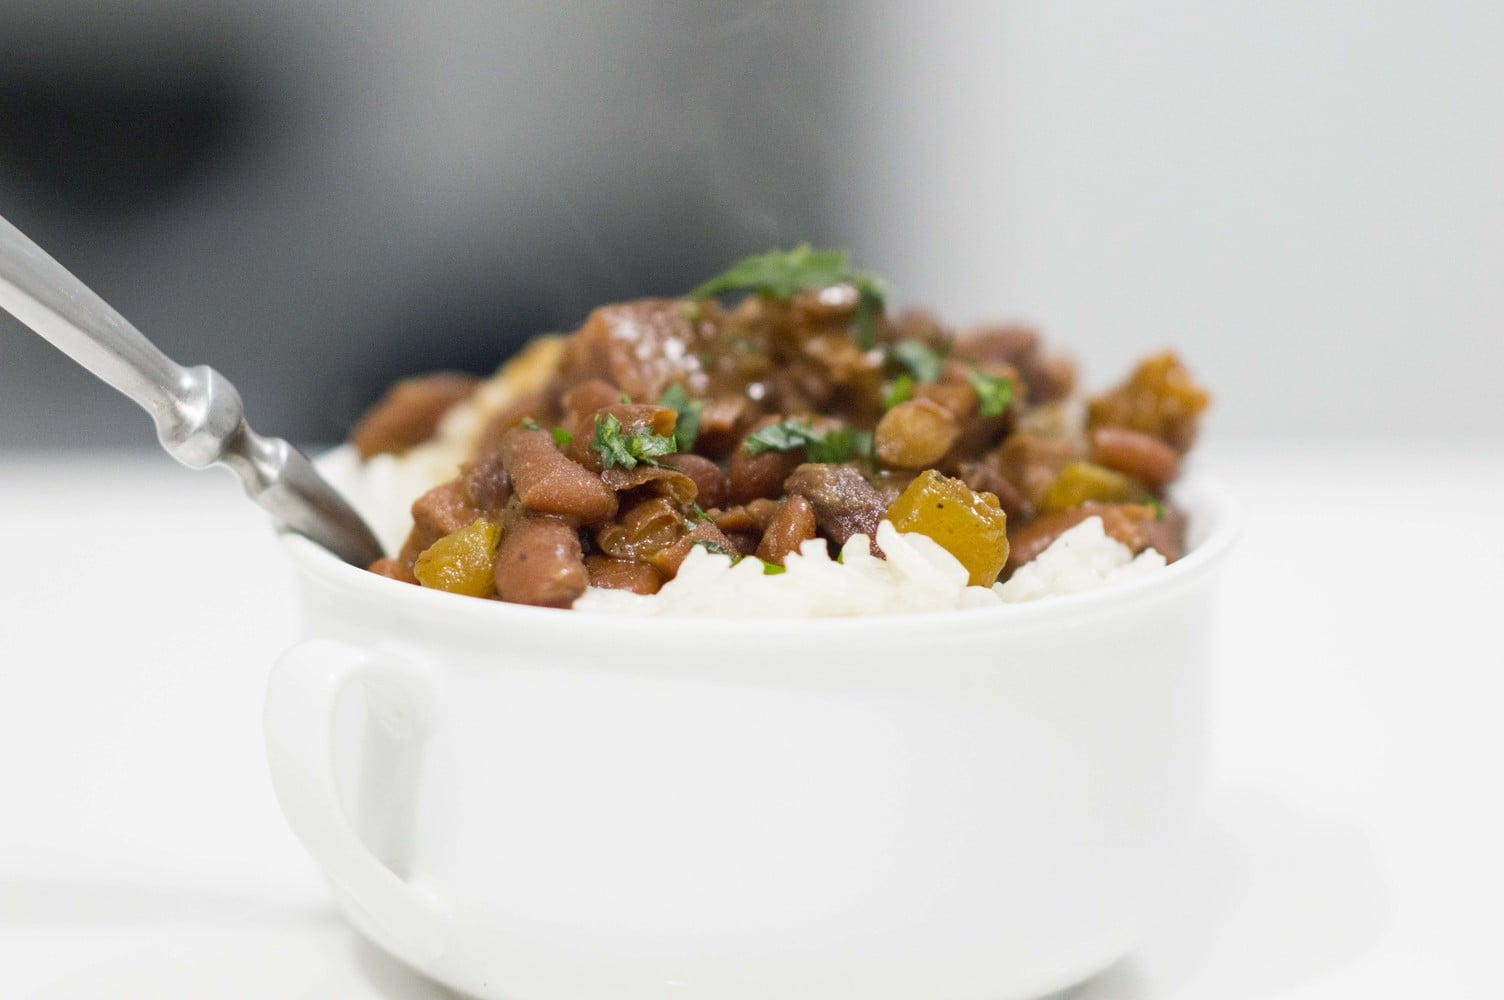 New Orleans Red Beans & Rice dished up and ready to eat